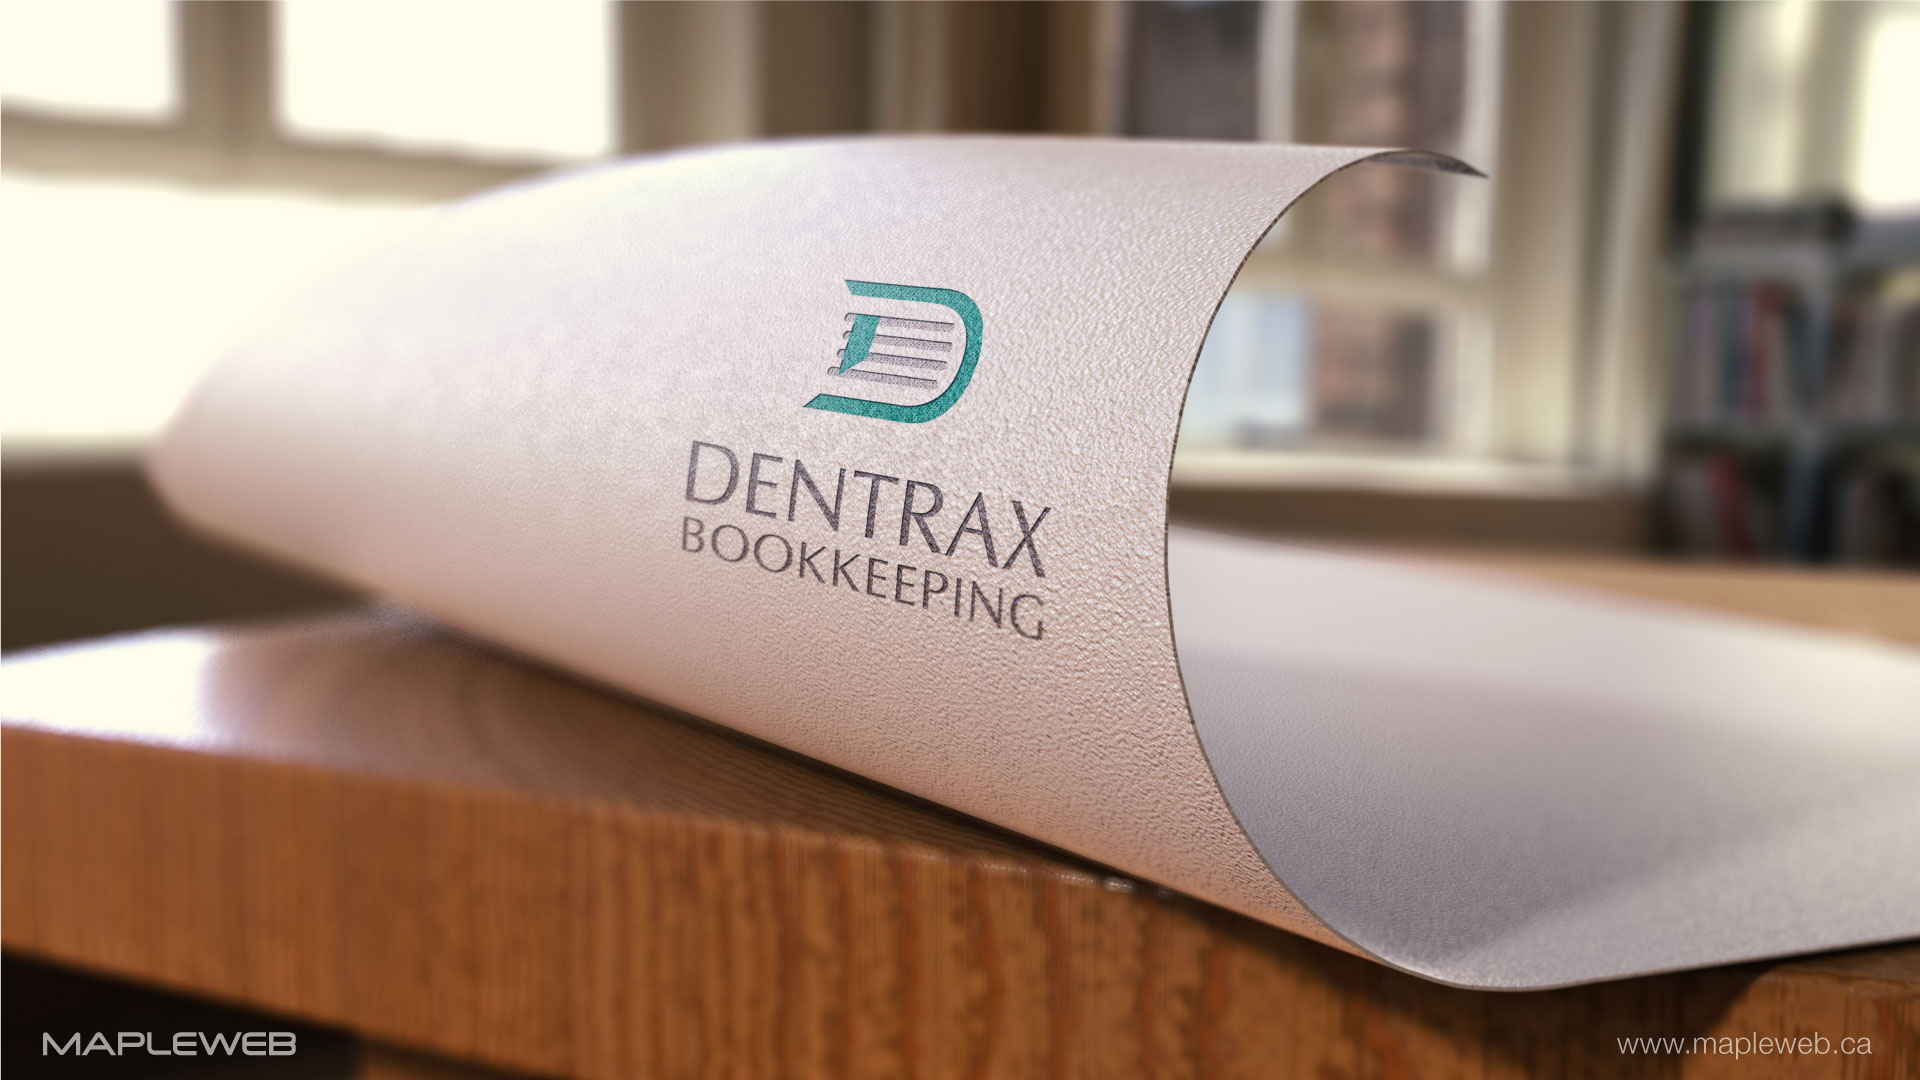 dentraxbookkeeping-brand-logo-design-by-mapleweb-vancouver-canada-folded-paper-mock